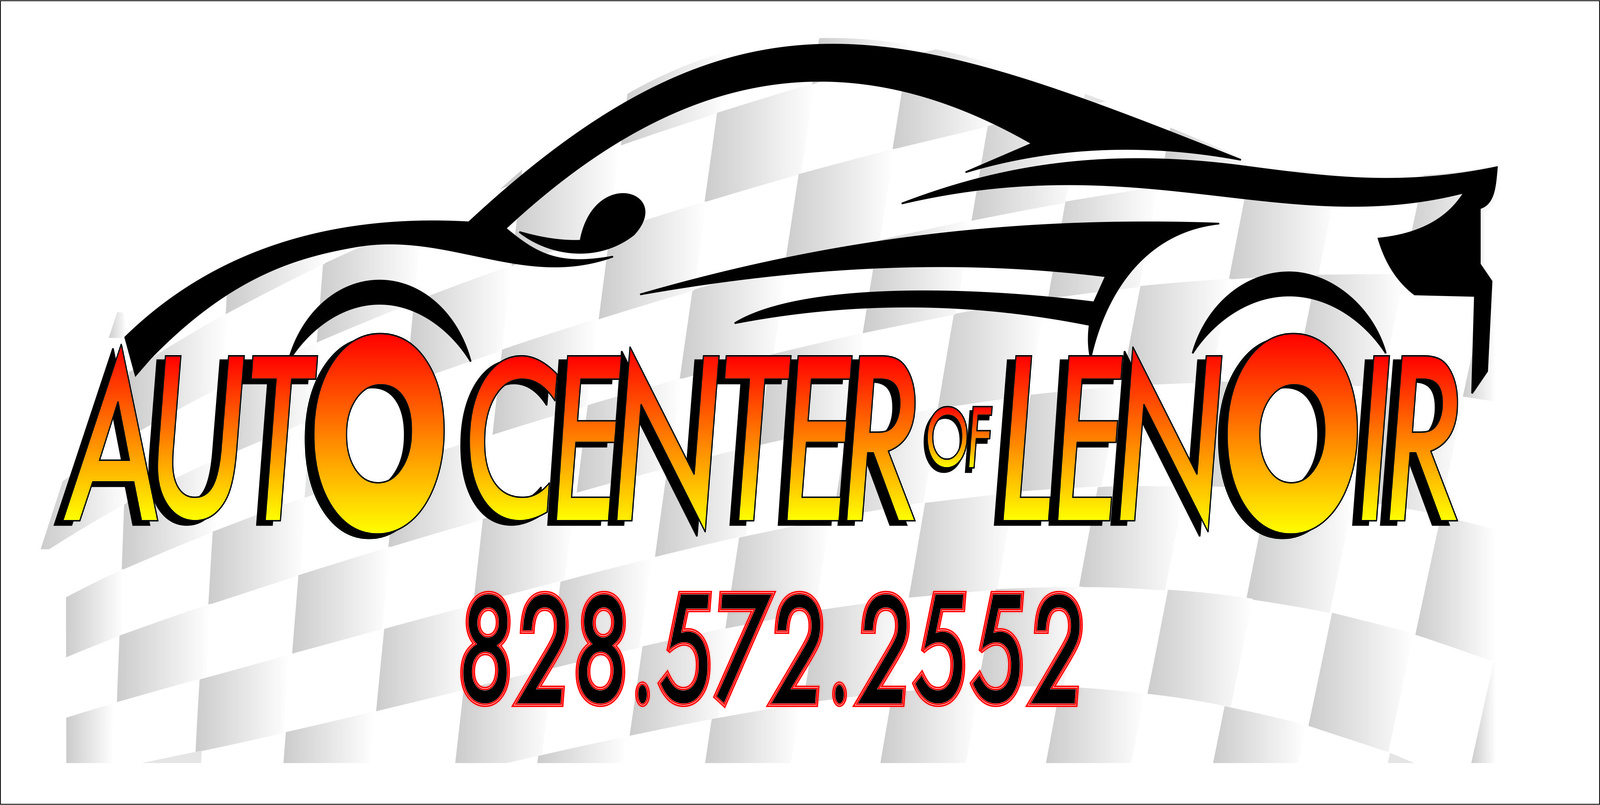 Lenoir City Dodge >> Auto Center of Lenoir - Lenoir, NC: Read Consumer reviews, Browse Used and New Cars for Sale